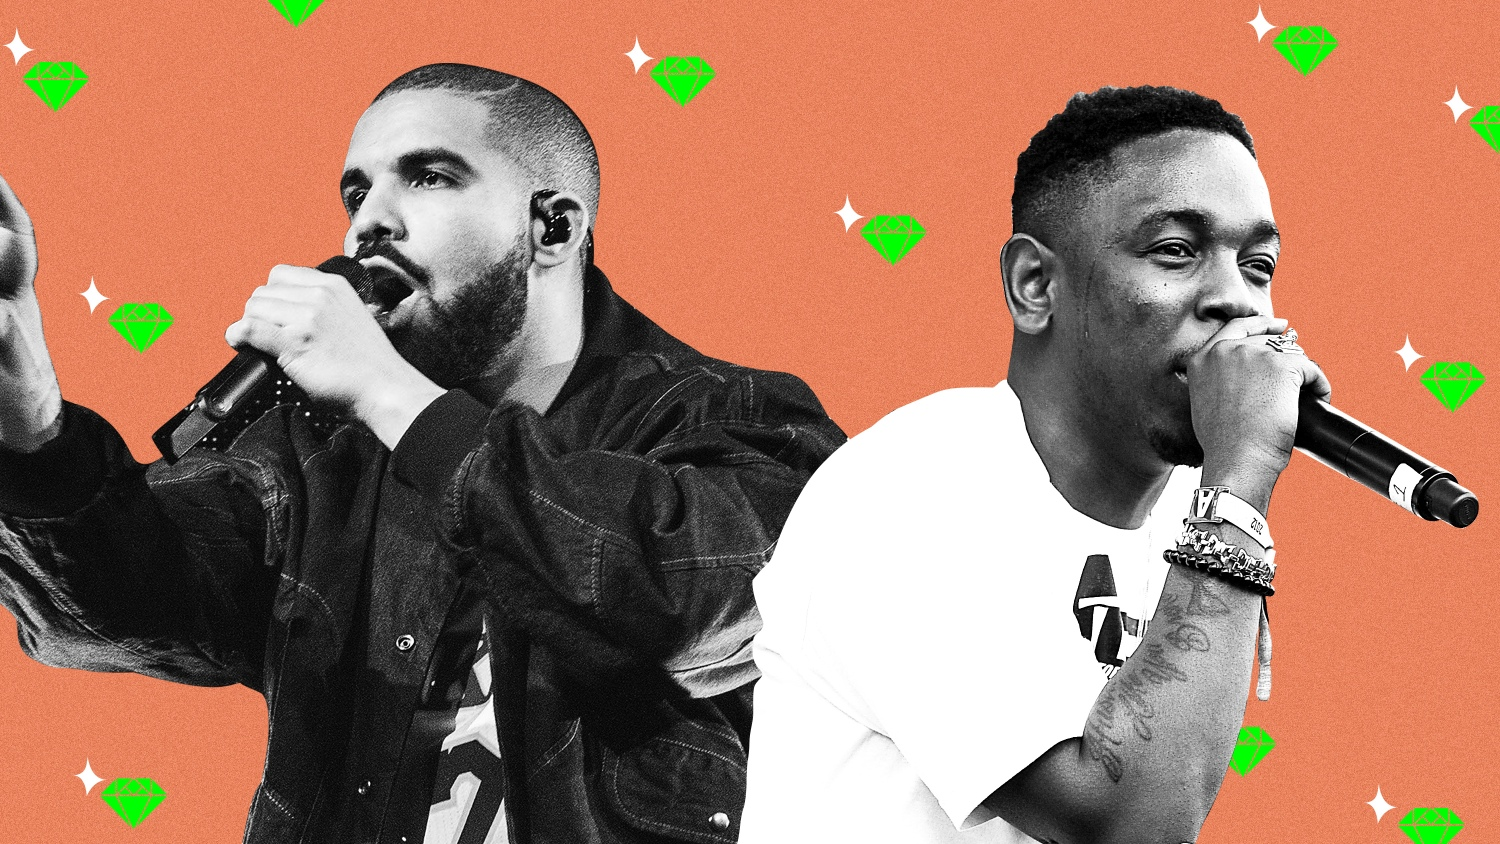 Kendrick Lamar, Drake and the definition of a 'classic' rap album